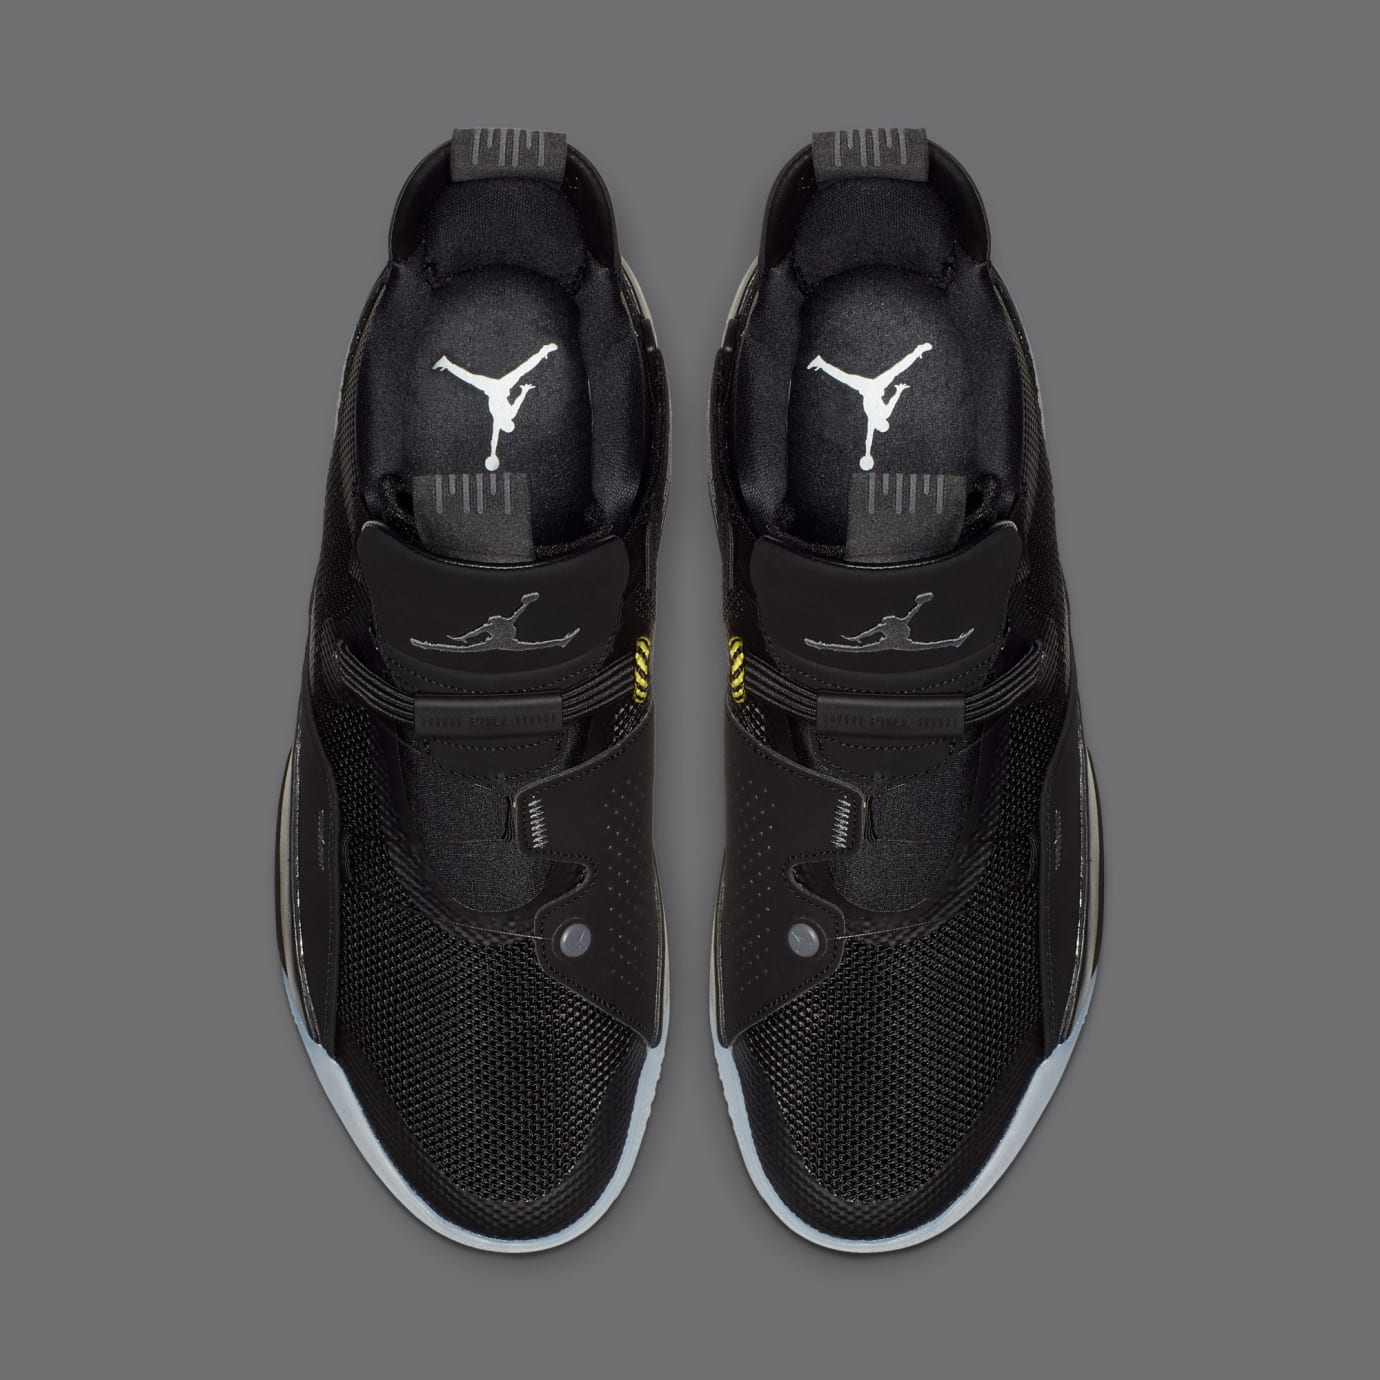 fashion save up to 80% top fashion Air Jordan 33 'Utility Blackout' Black/White-Dark Grey AQ8830-002 ...